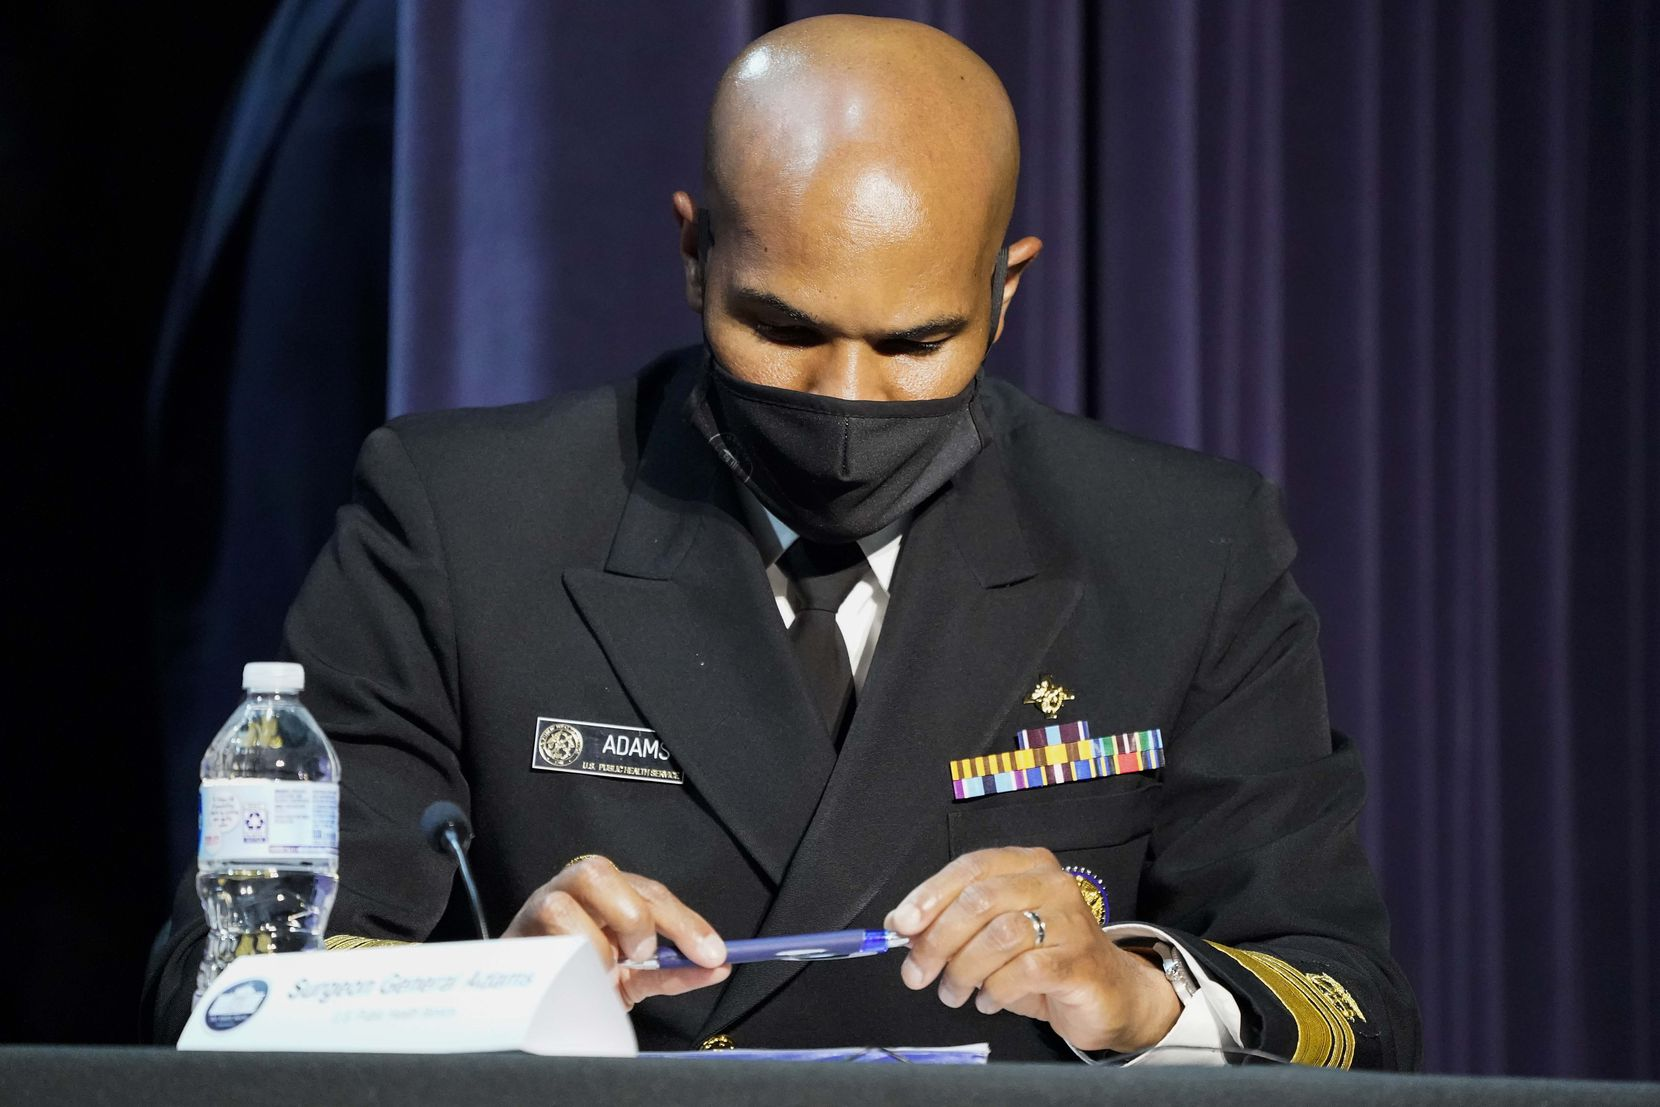 Surgeon General Jerome Adams takes notes during a roundtable conversation about race relations and policing at Gateway Church Dallas Campus on Thursday.